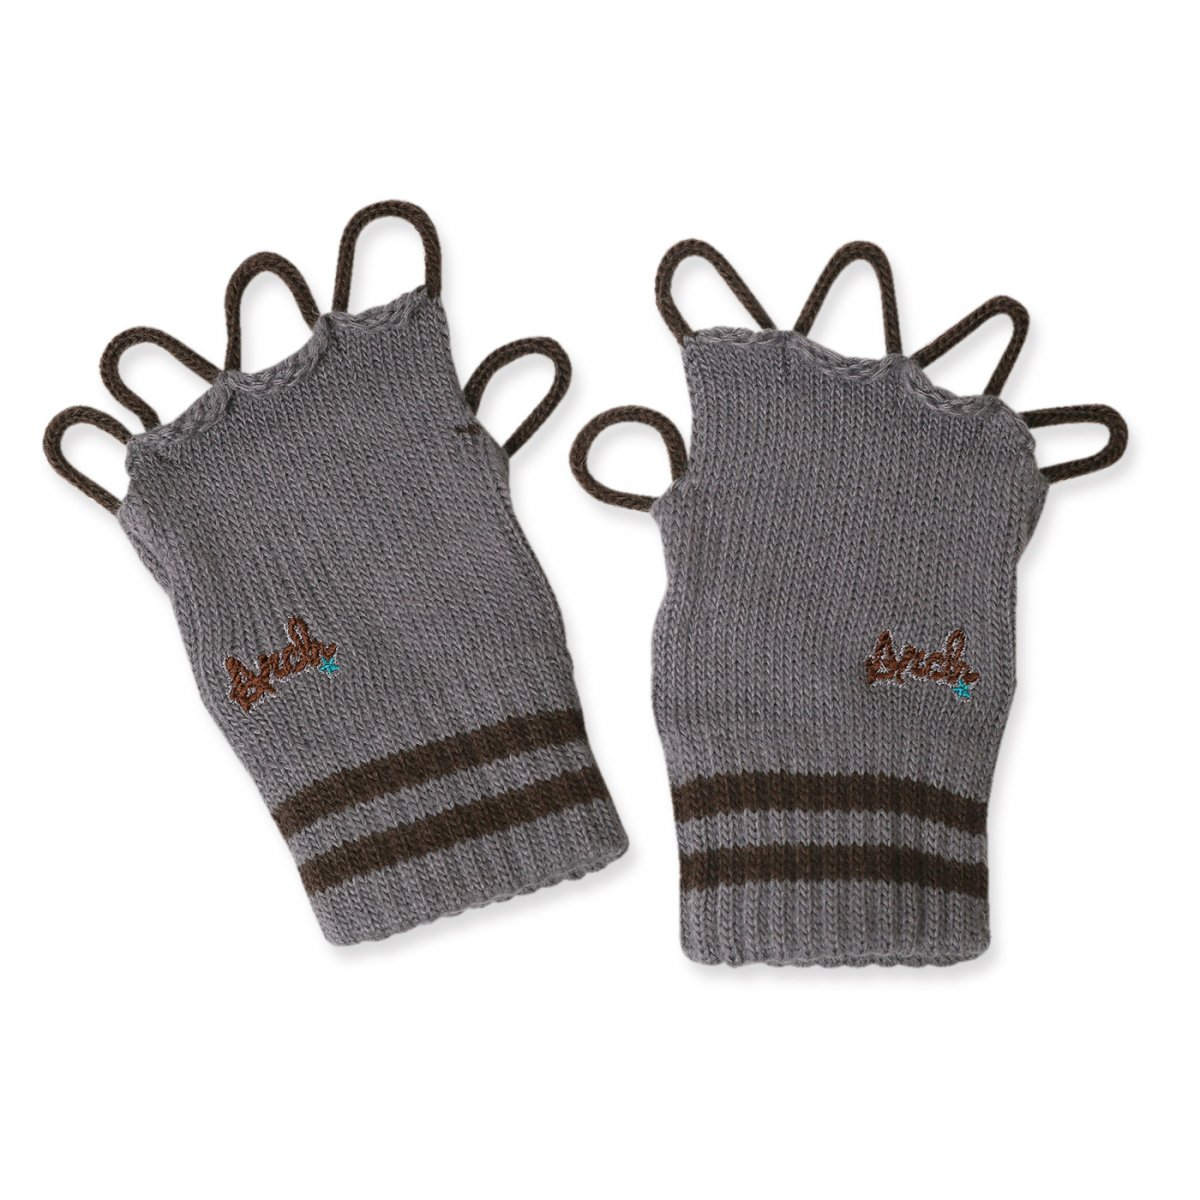 line crew glove【gray/brown】